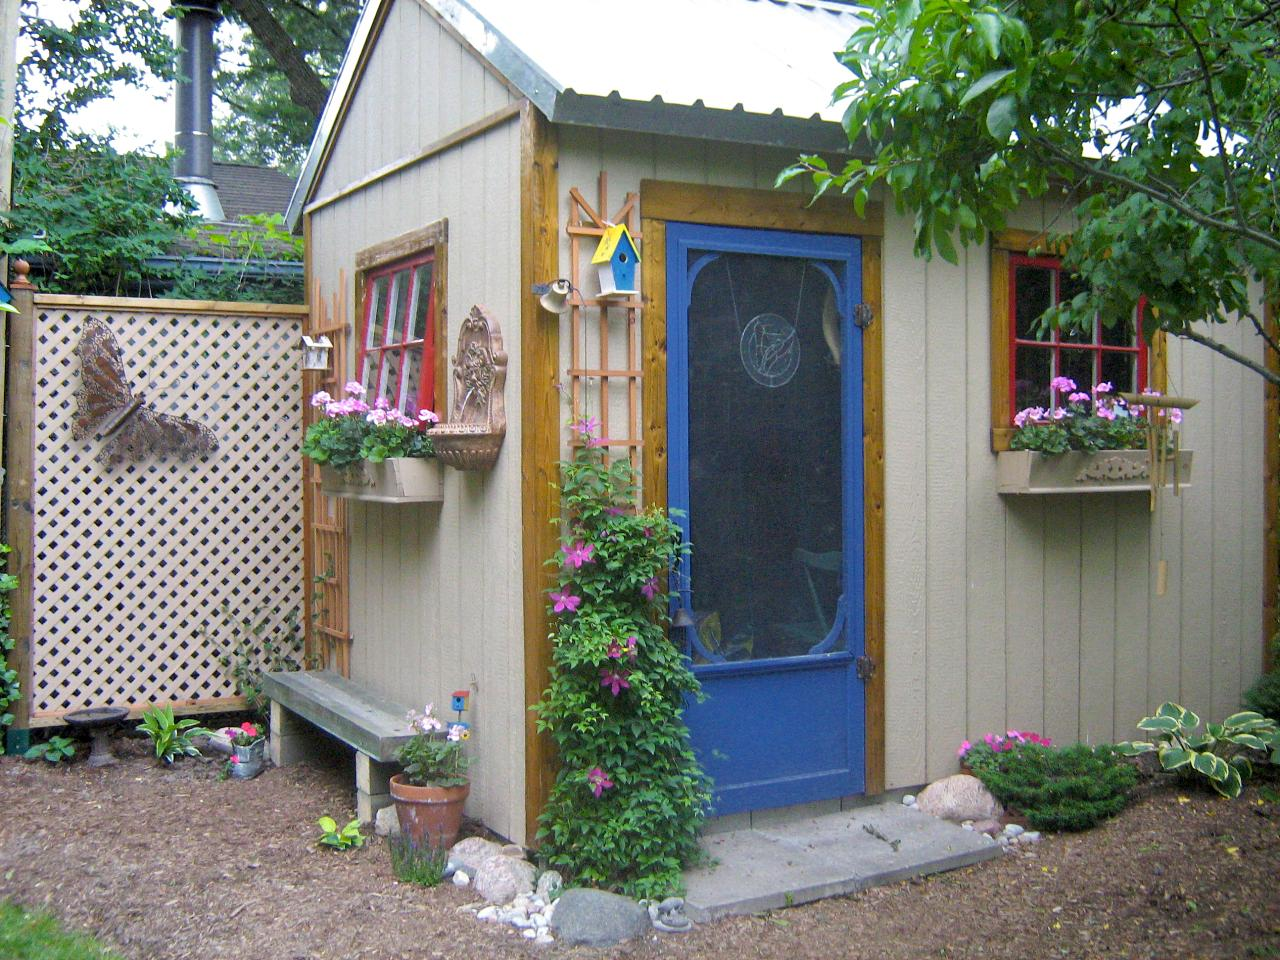 Maximum value outdoor structure projects shed hgtv for Garden shed pictures